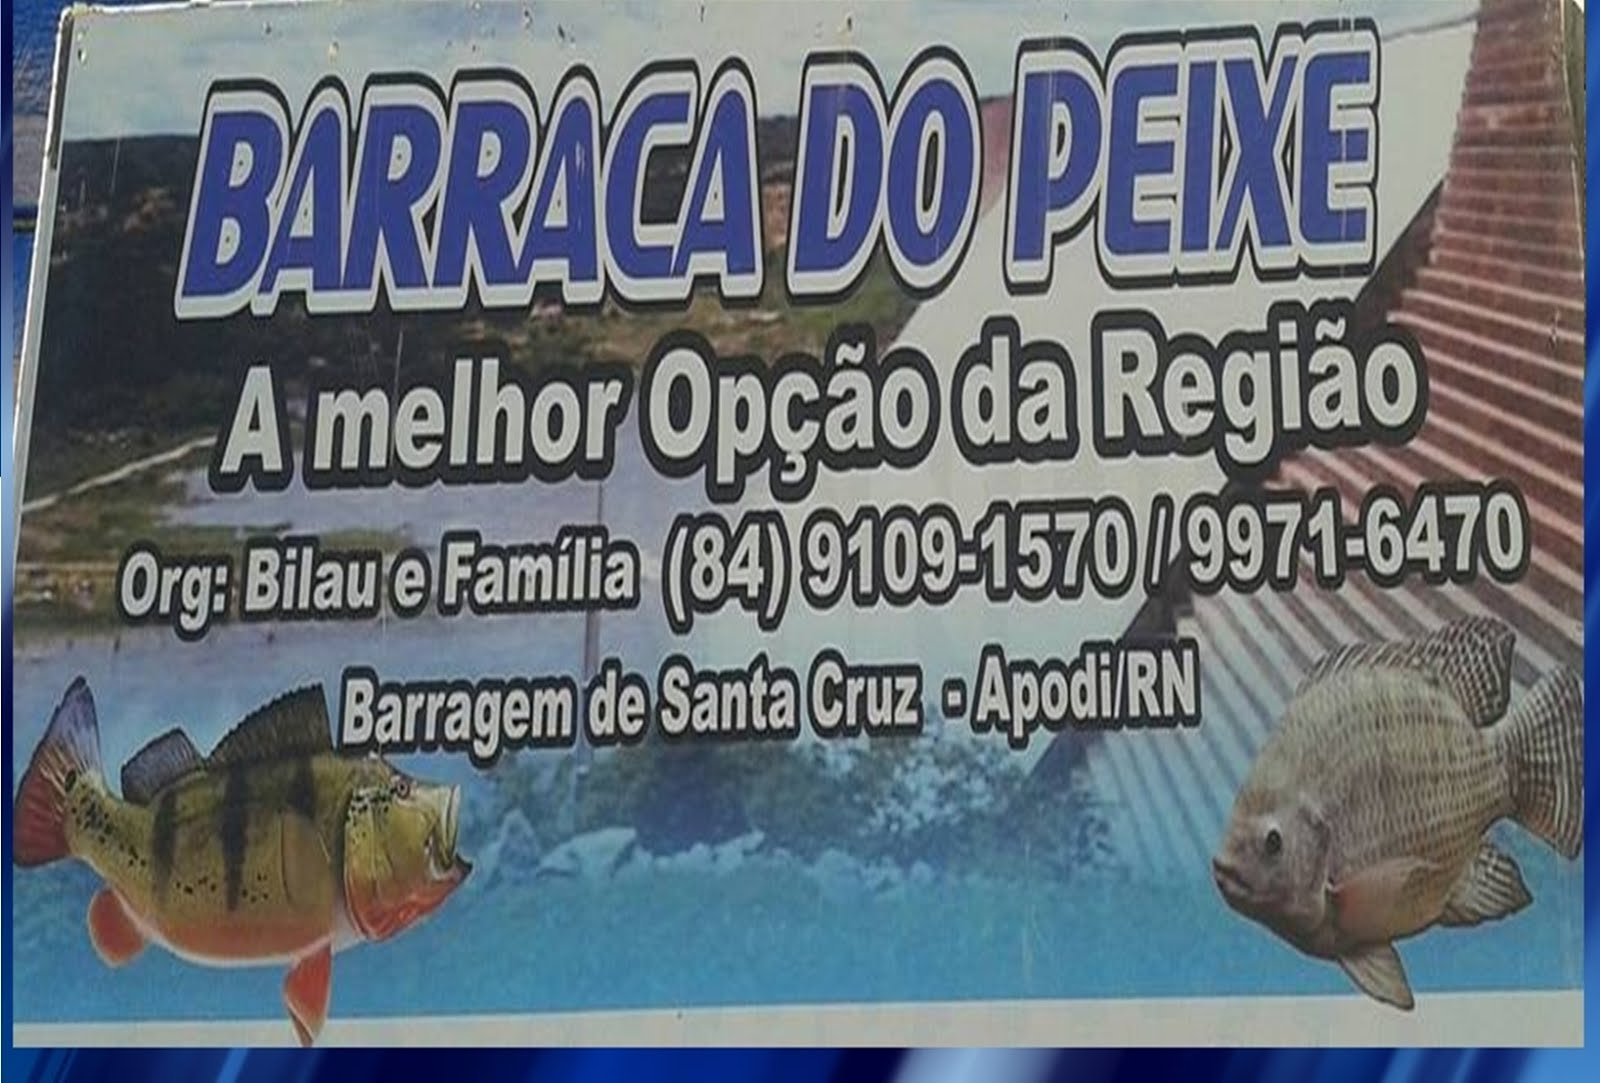 BARRACA DO PEIXE NA BARRAGEM DE SANTA CRUZ - APODI